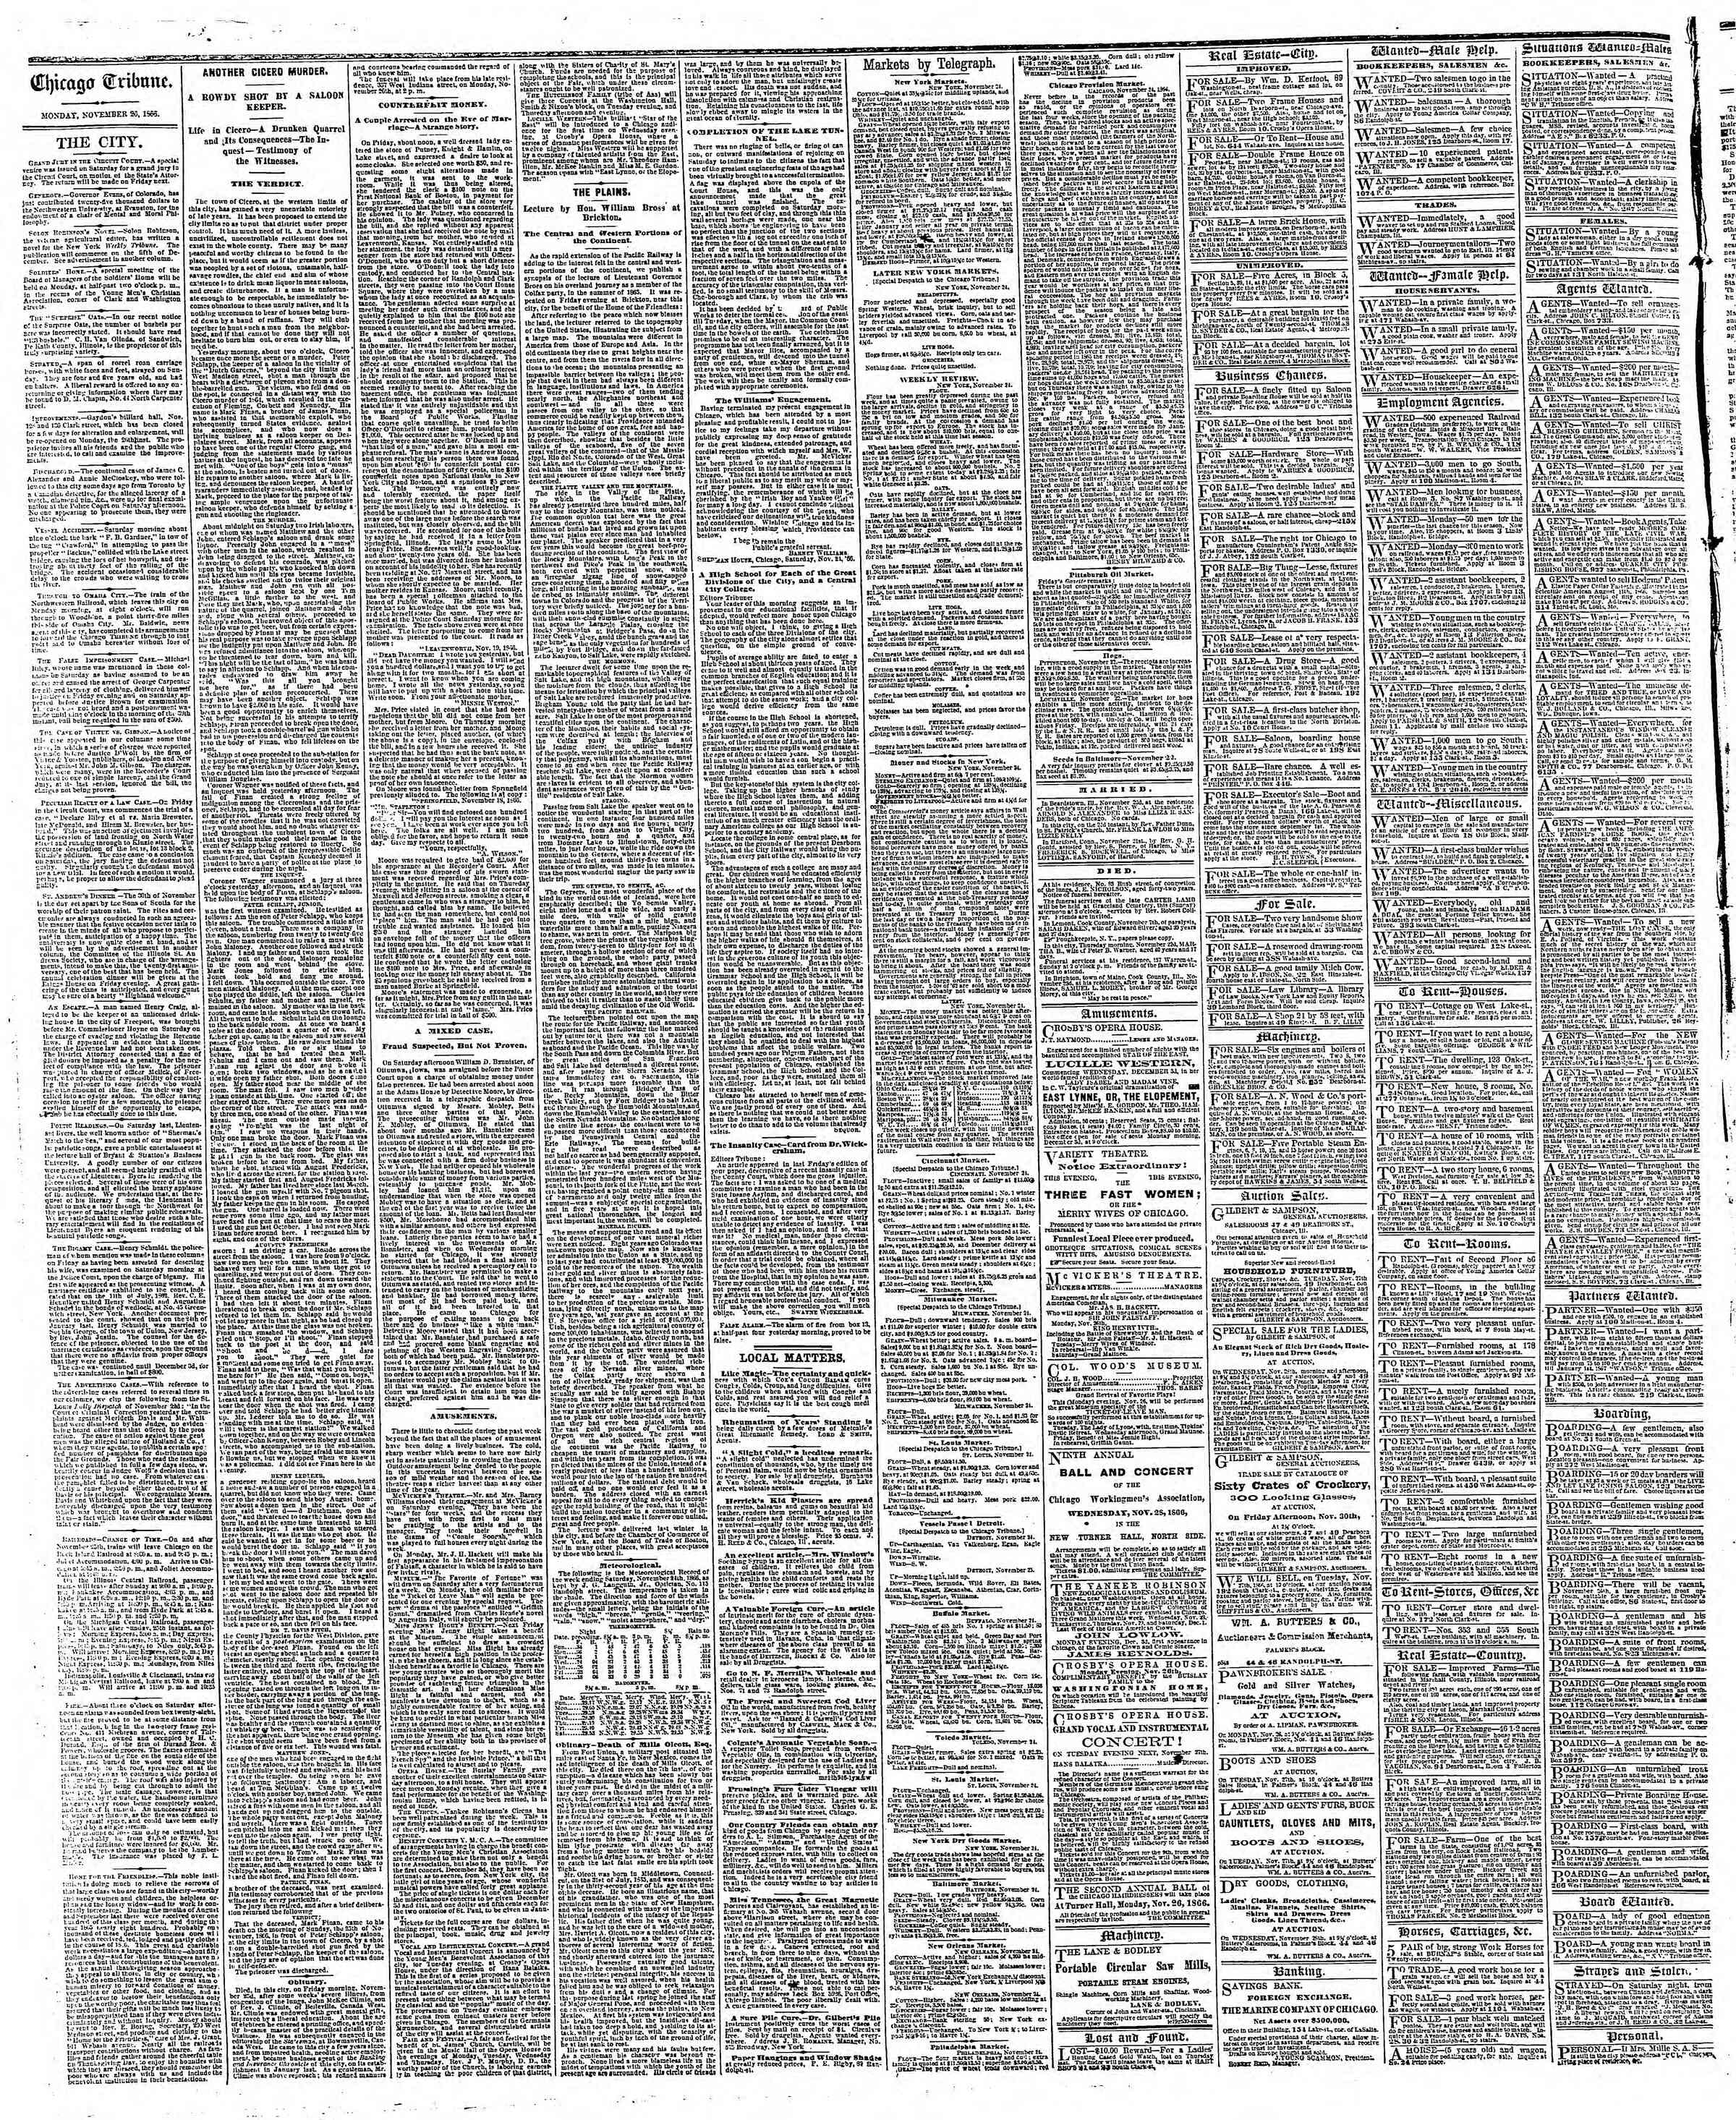 Newspaper of The Chicago Tribune dated November 26, 1866 Page 4